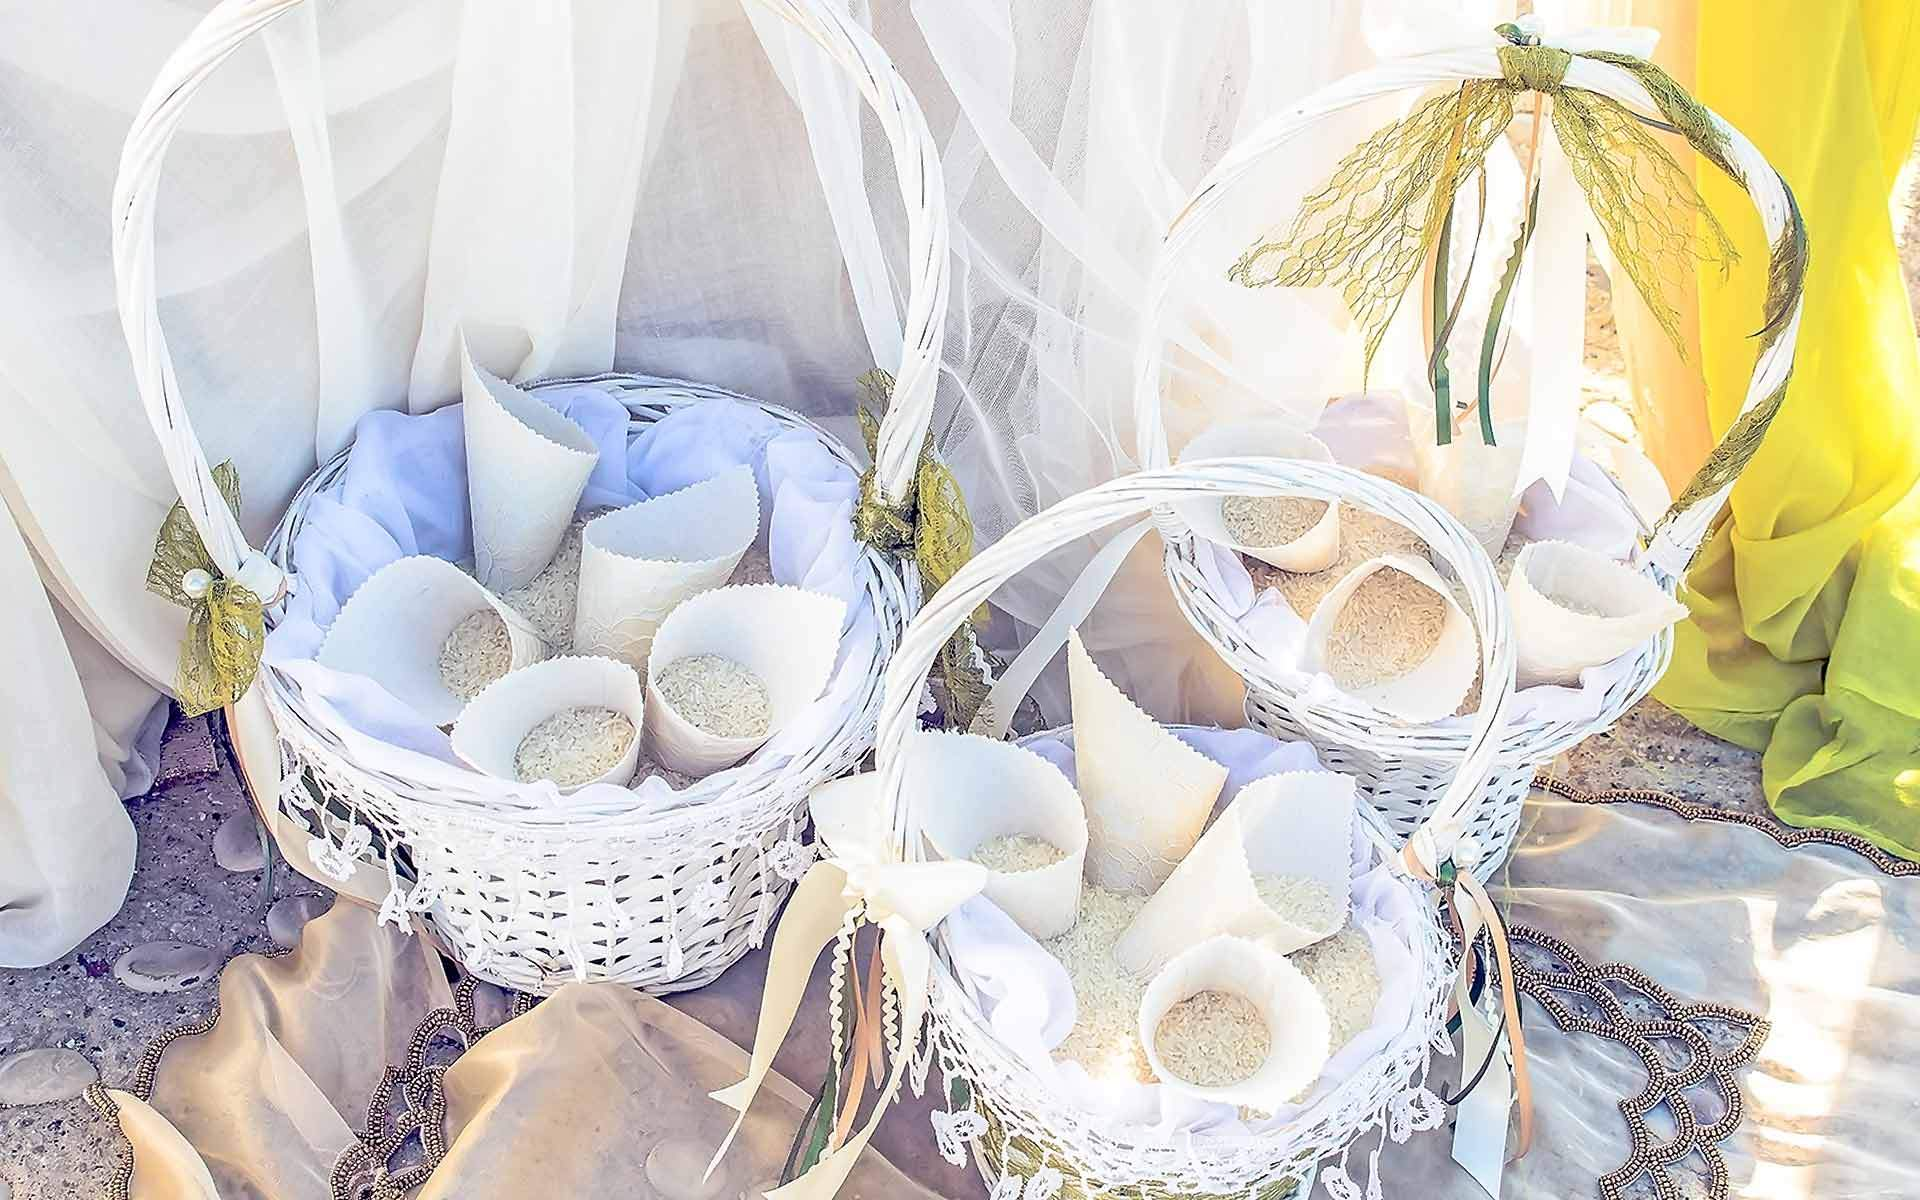 White-baskets-with-rice-and-cones-by-Diamond-Events-Wedding-Event-planning-services